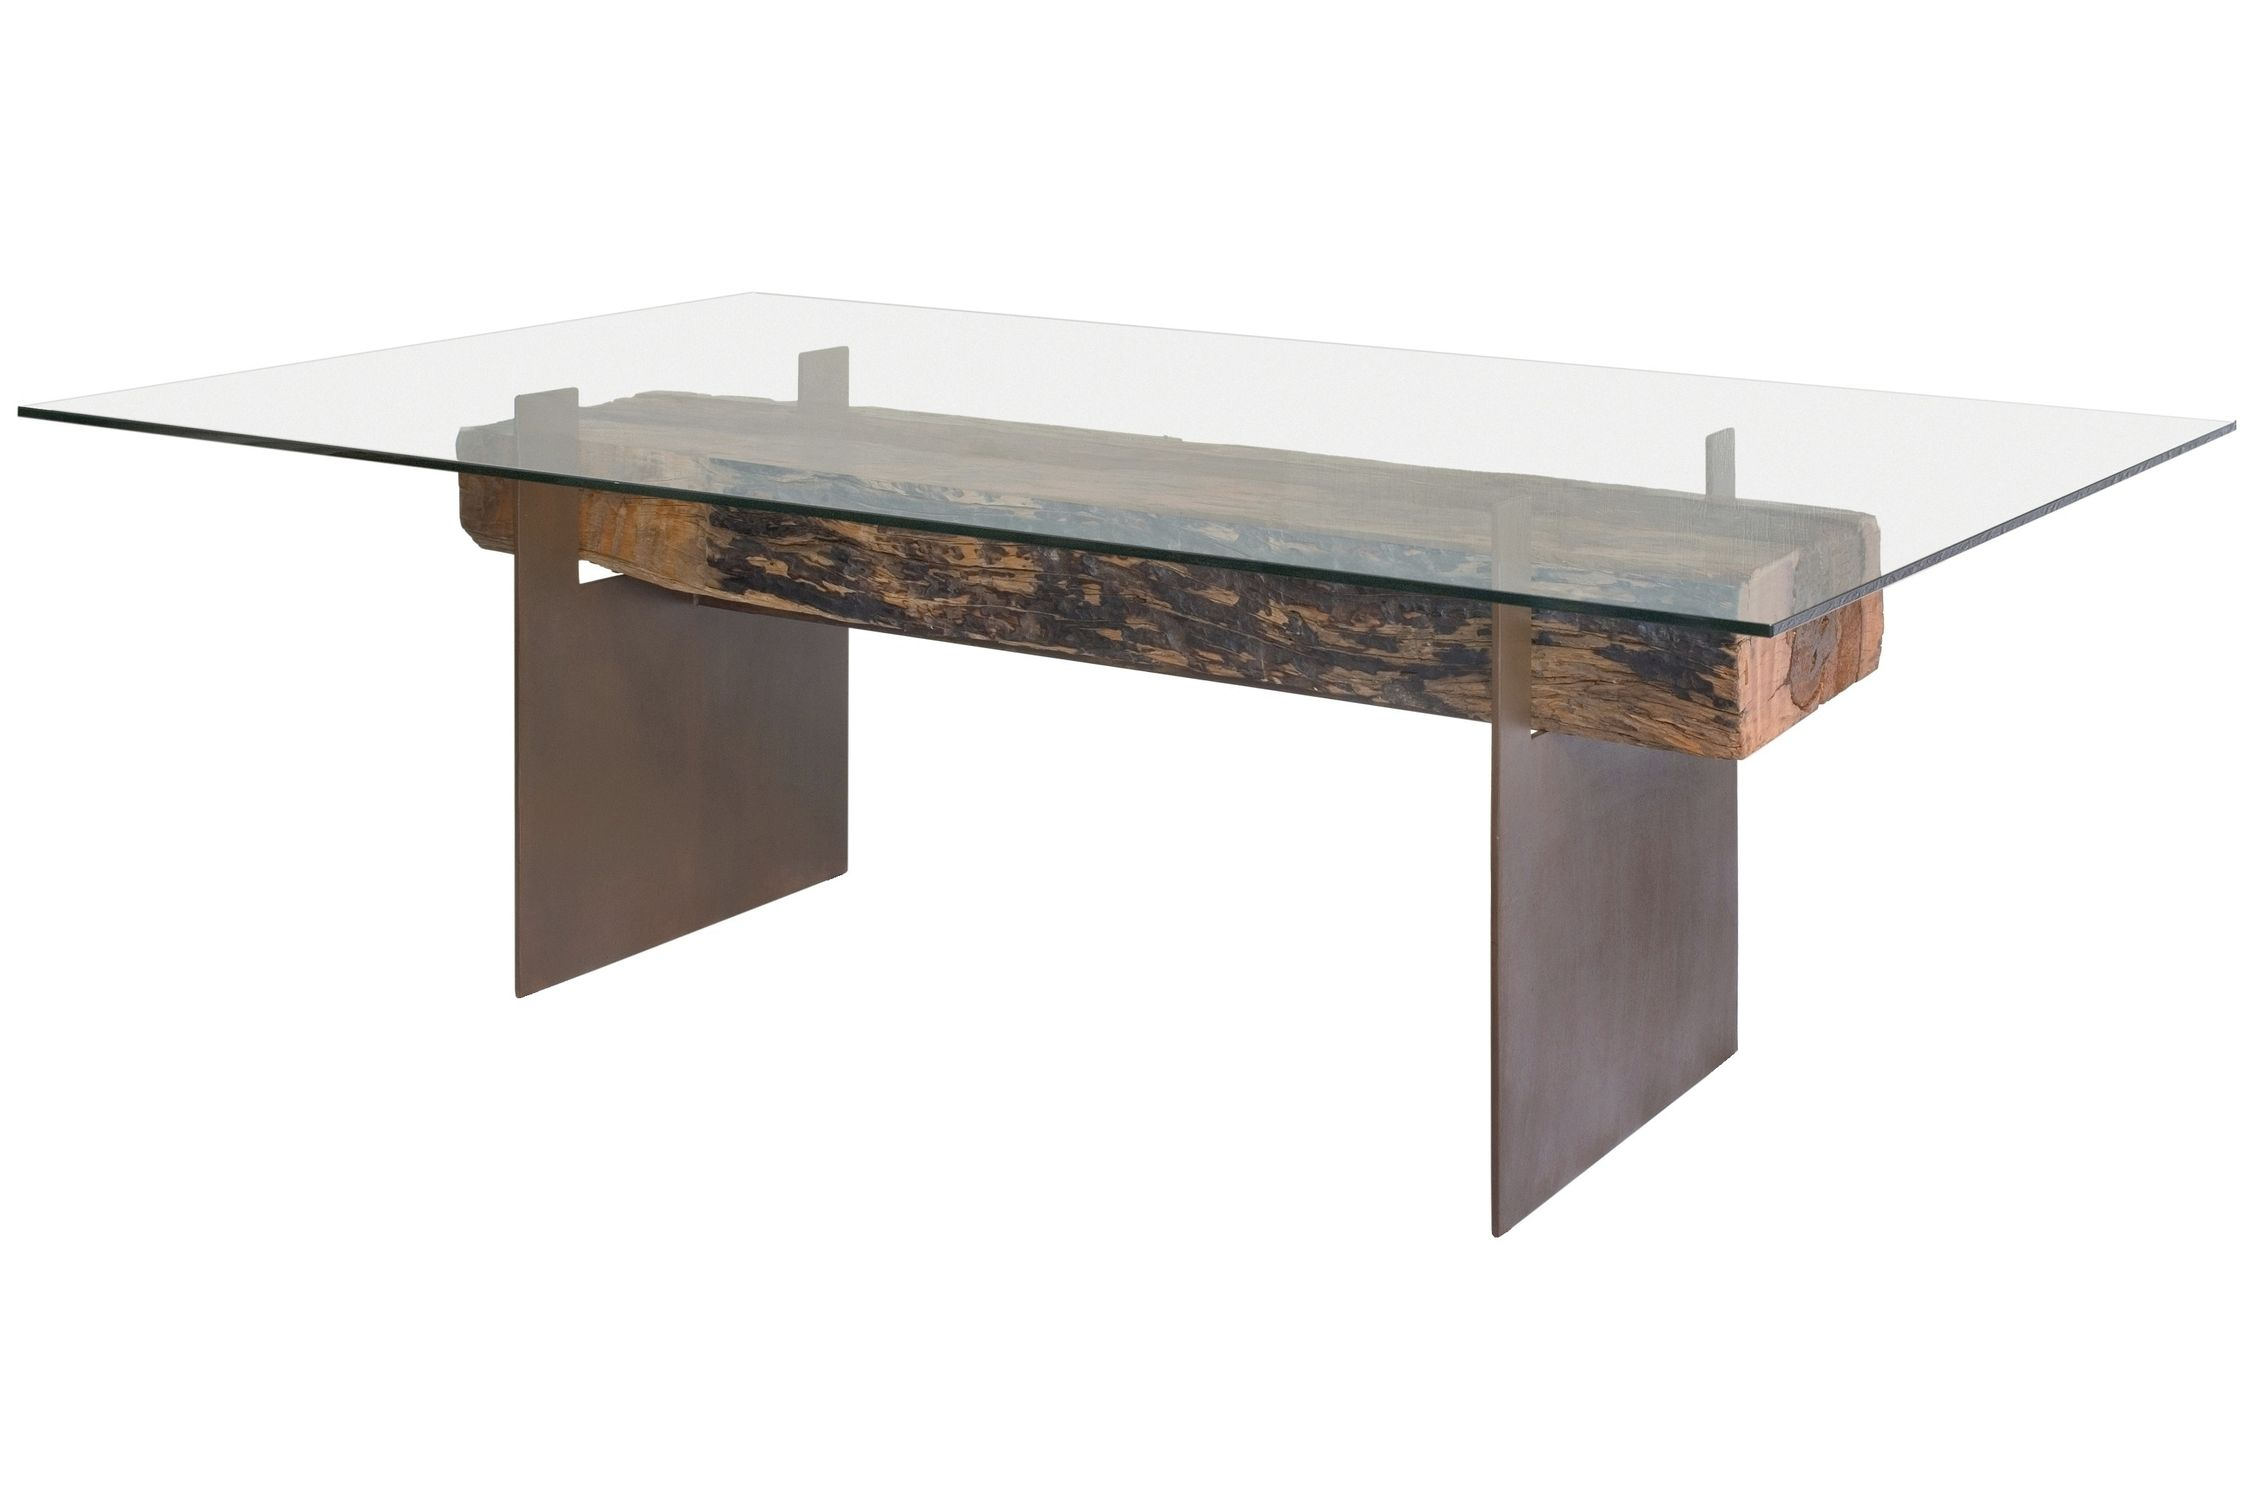 Contemporary Table Wooden Rectangular In Reclaimed Material Oitis